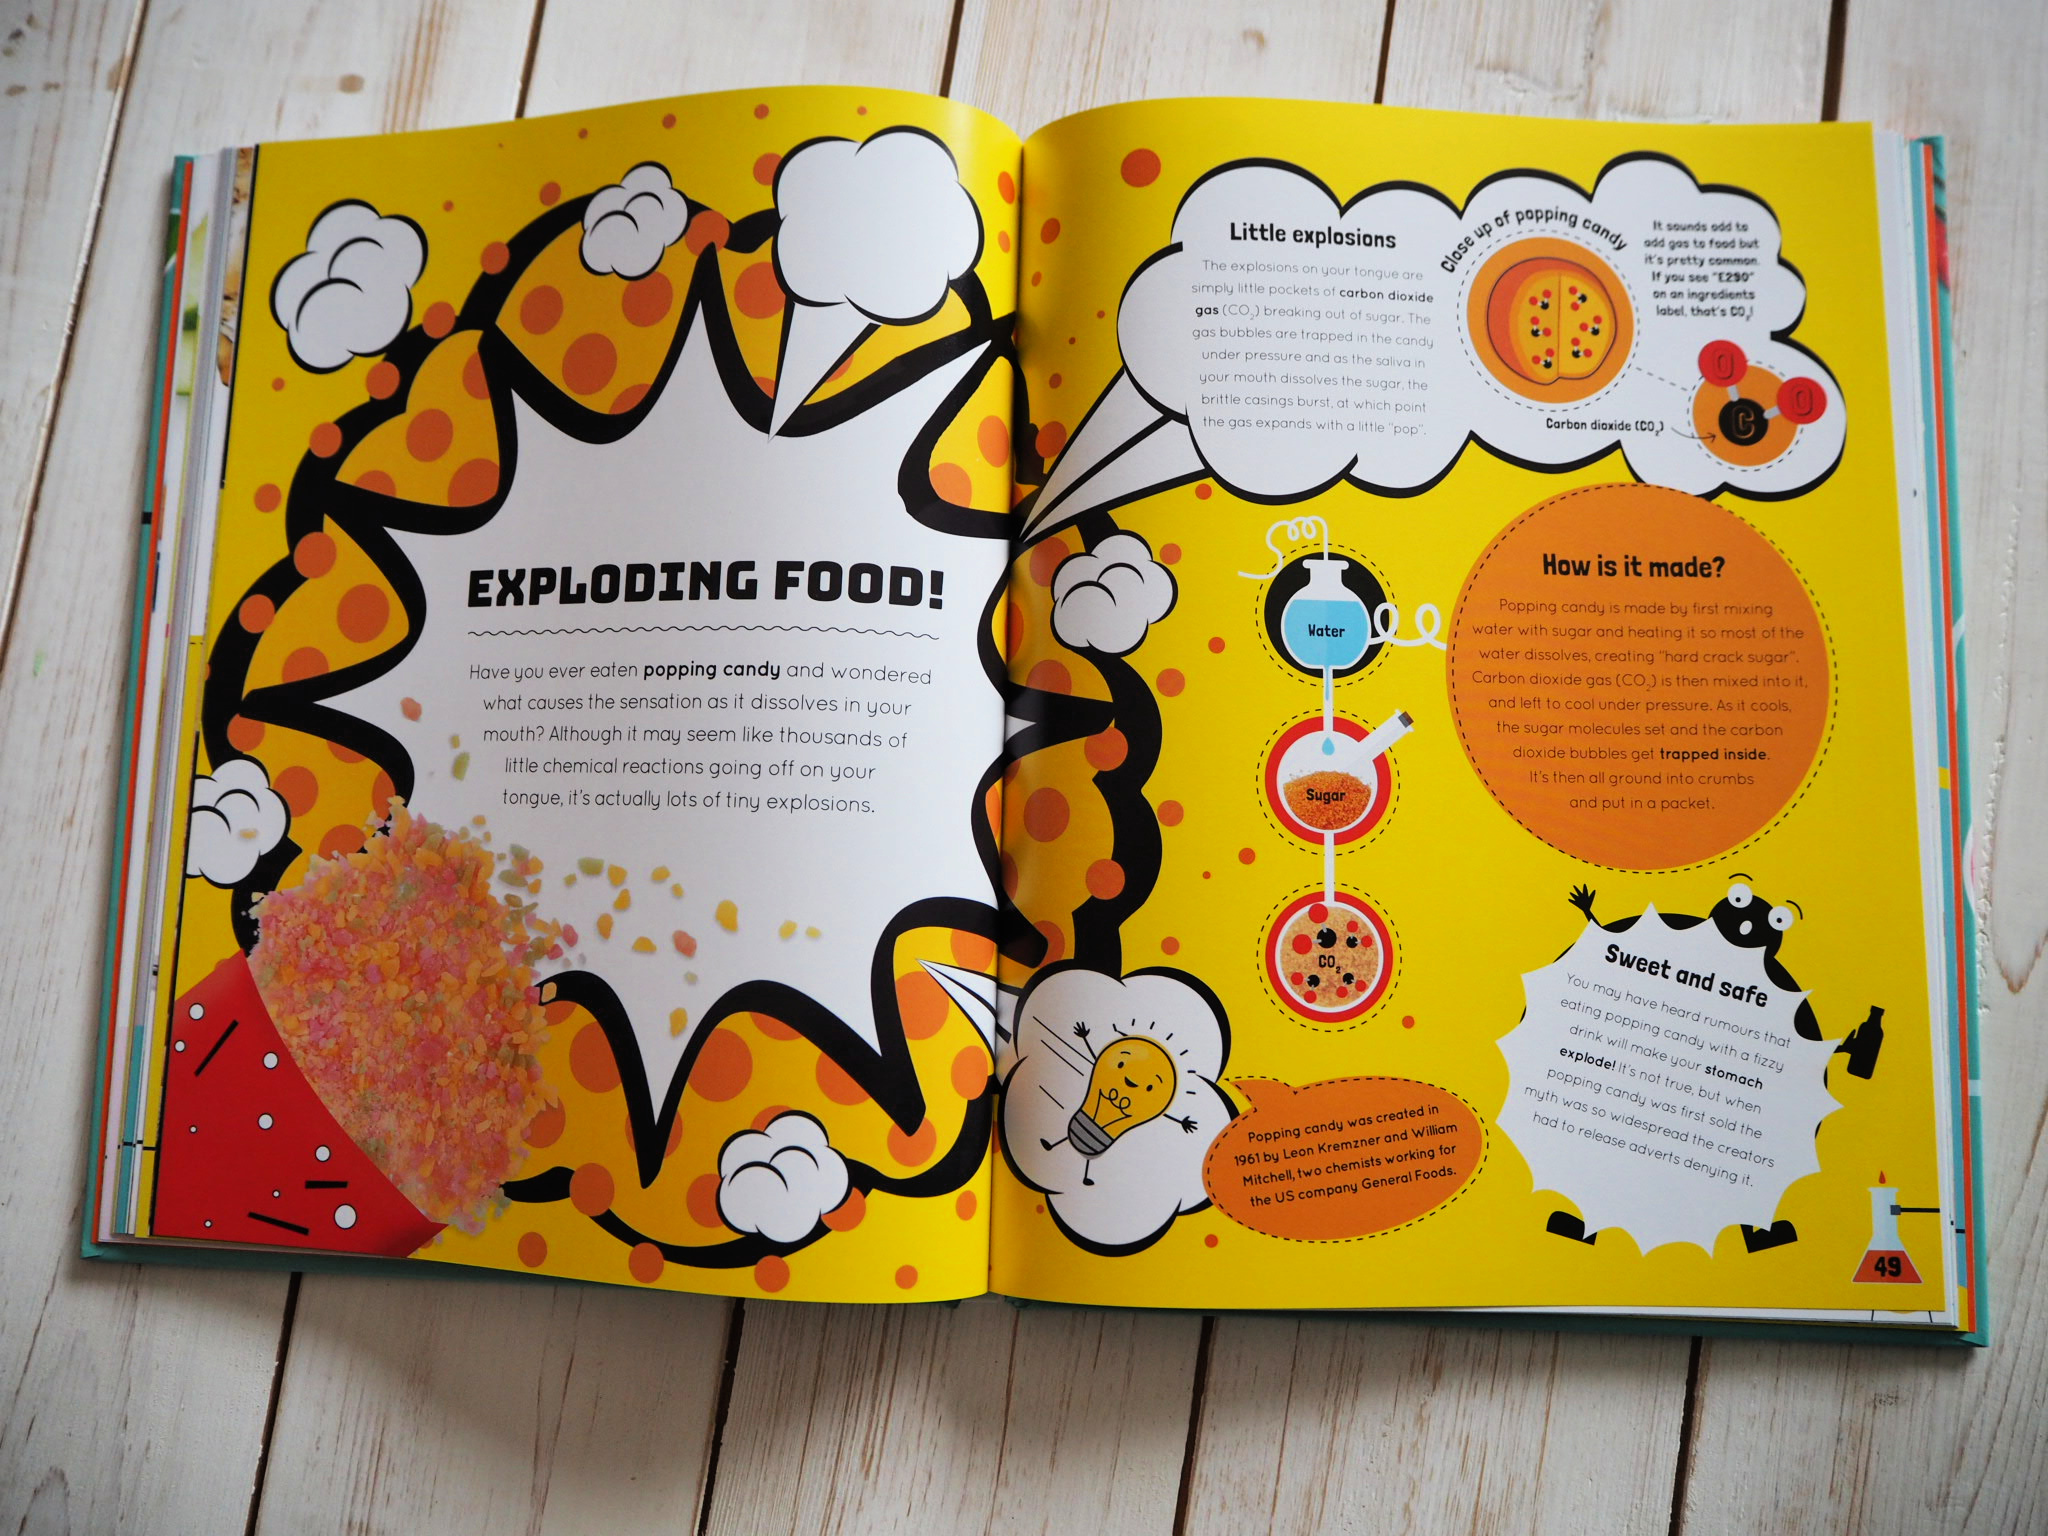 Inside the book - exploding food